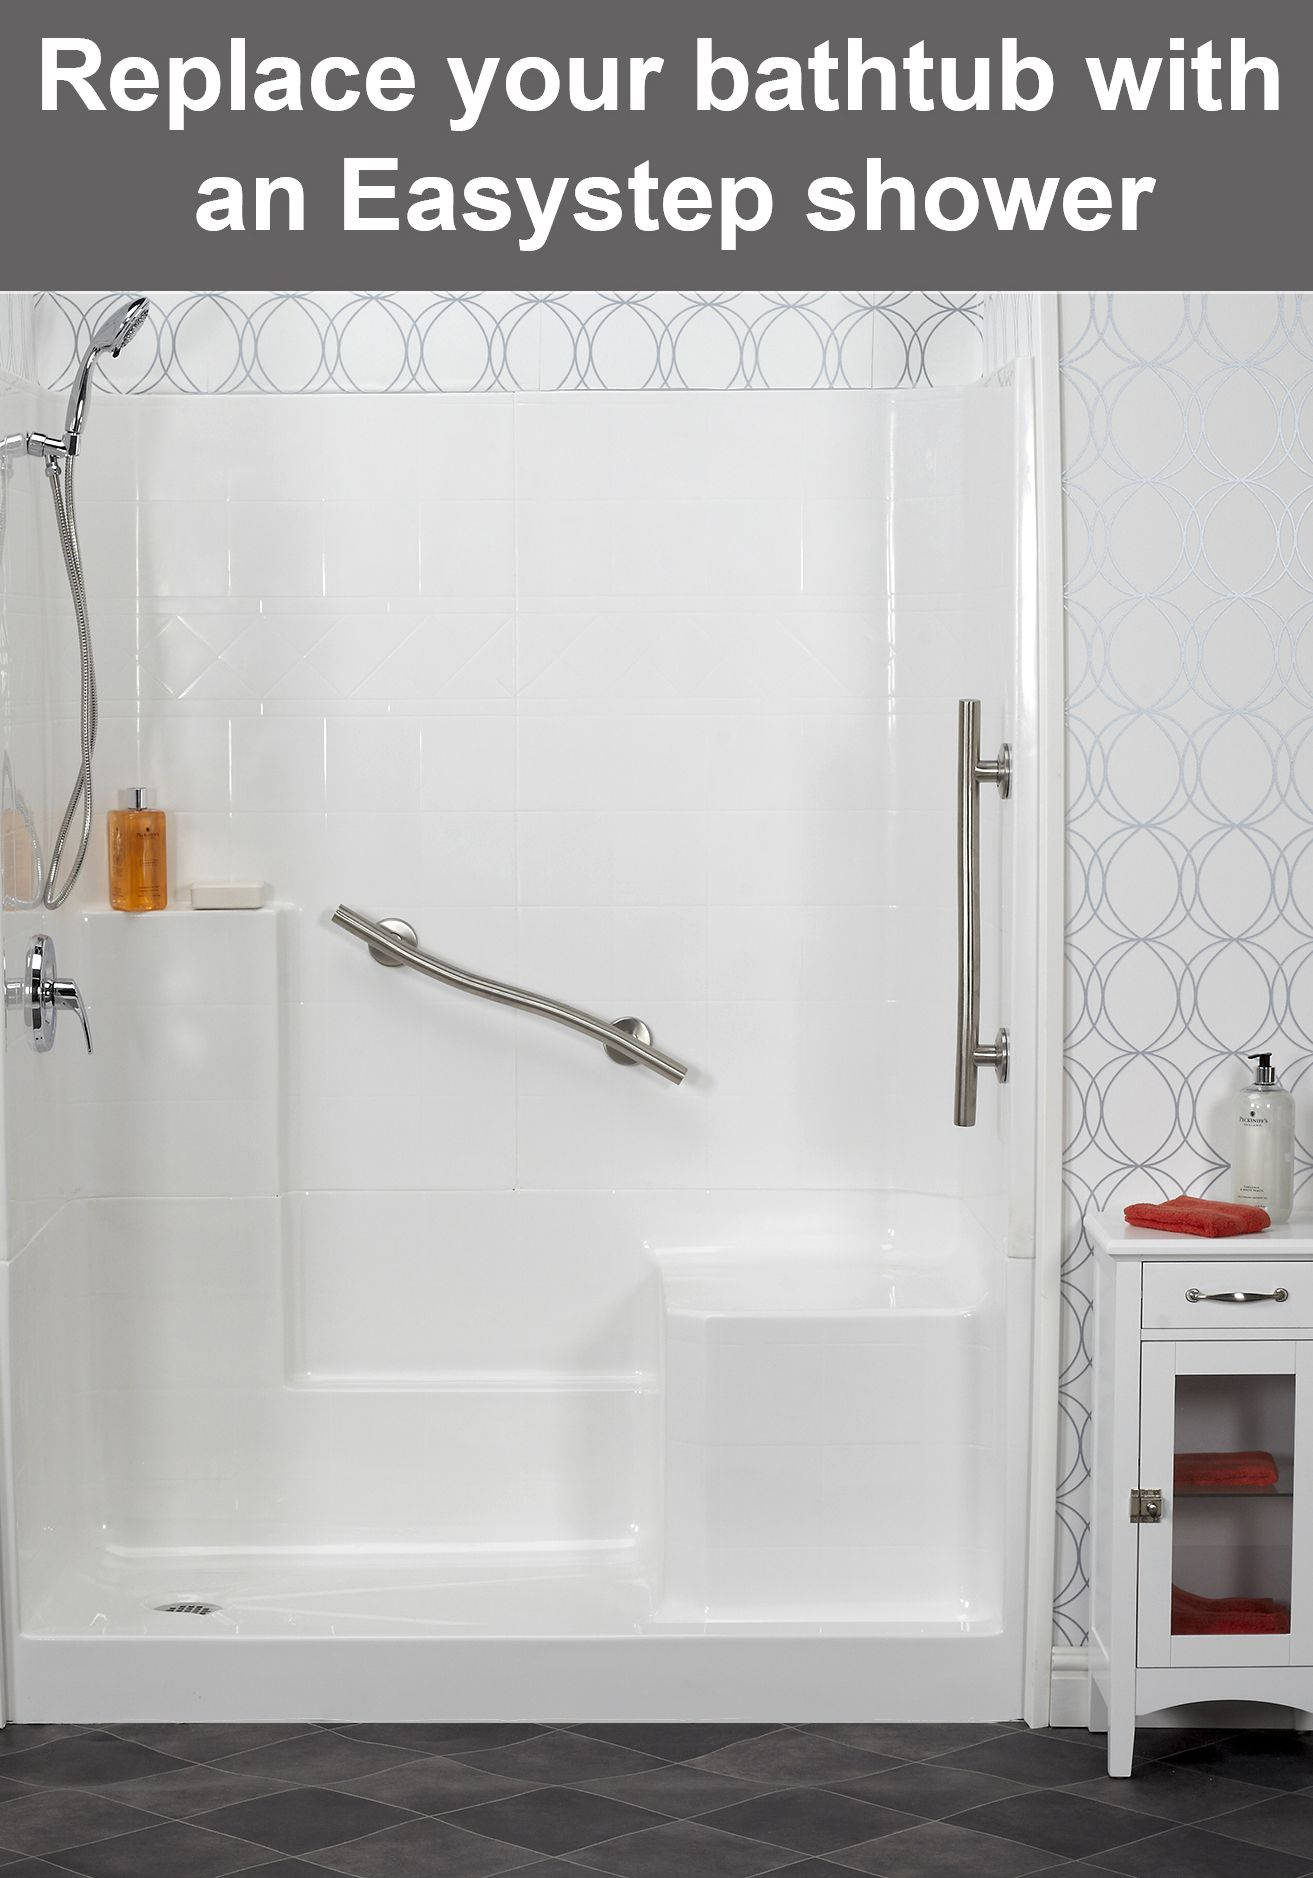 An Easy Step Shower From Freedom Showers Is Perfect For A Multi